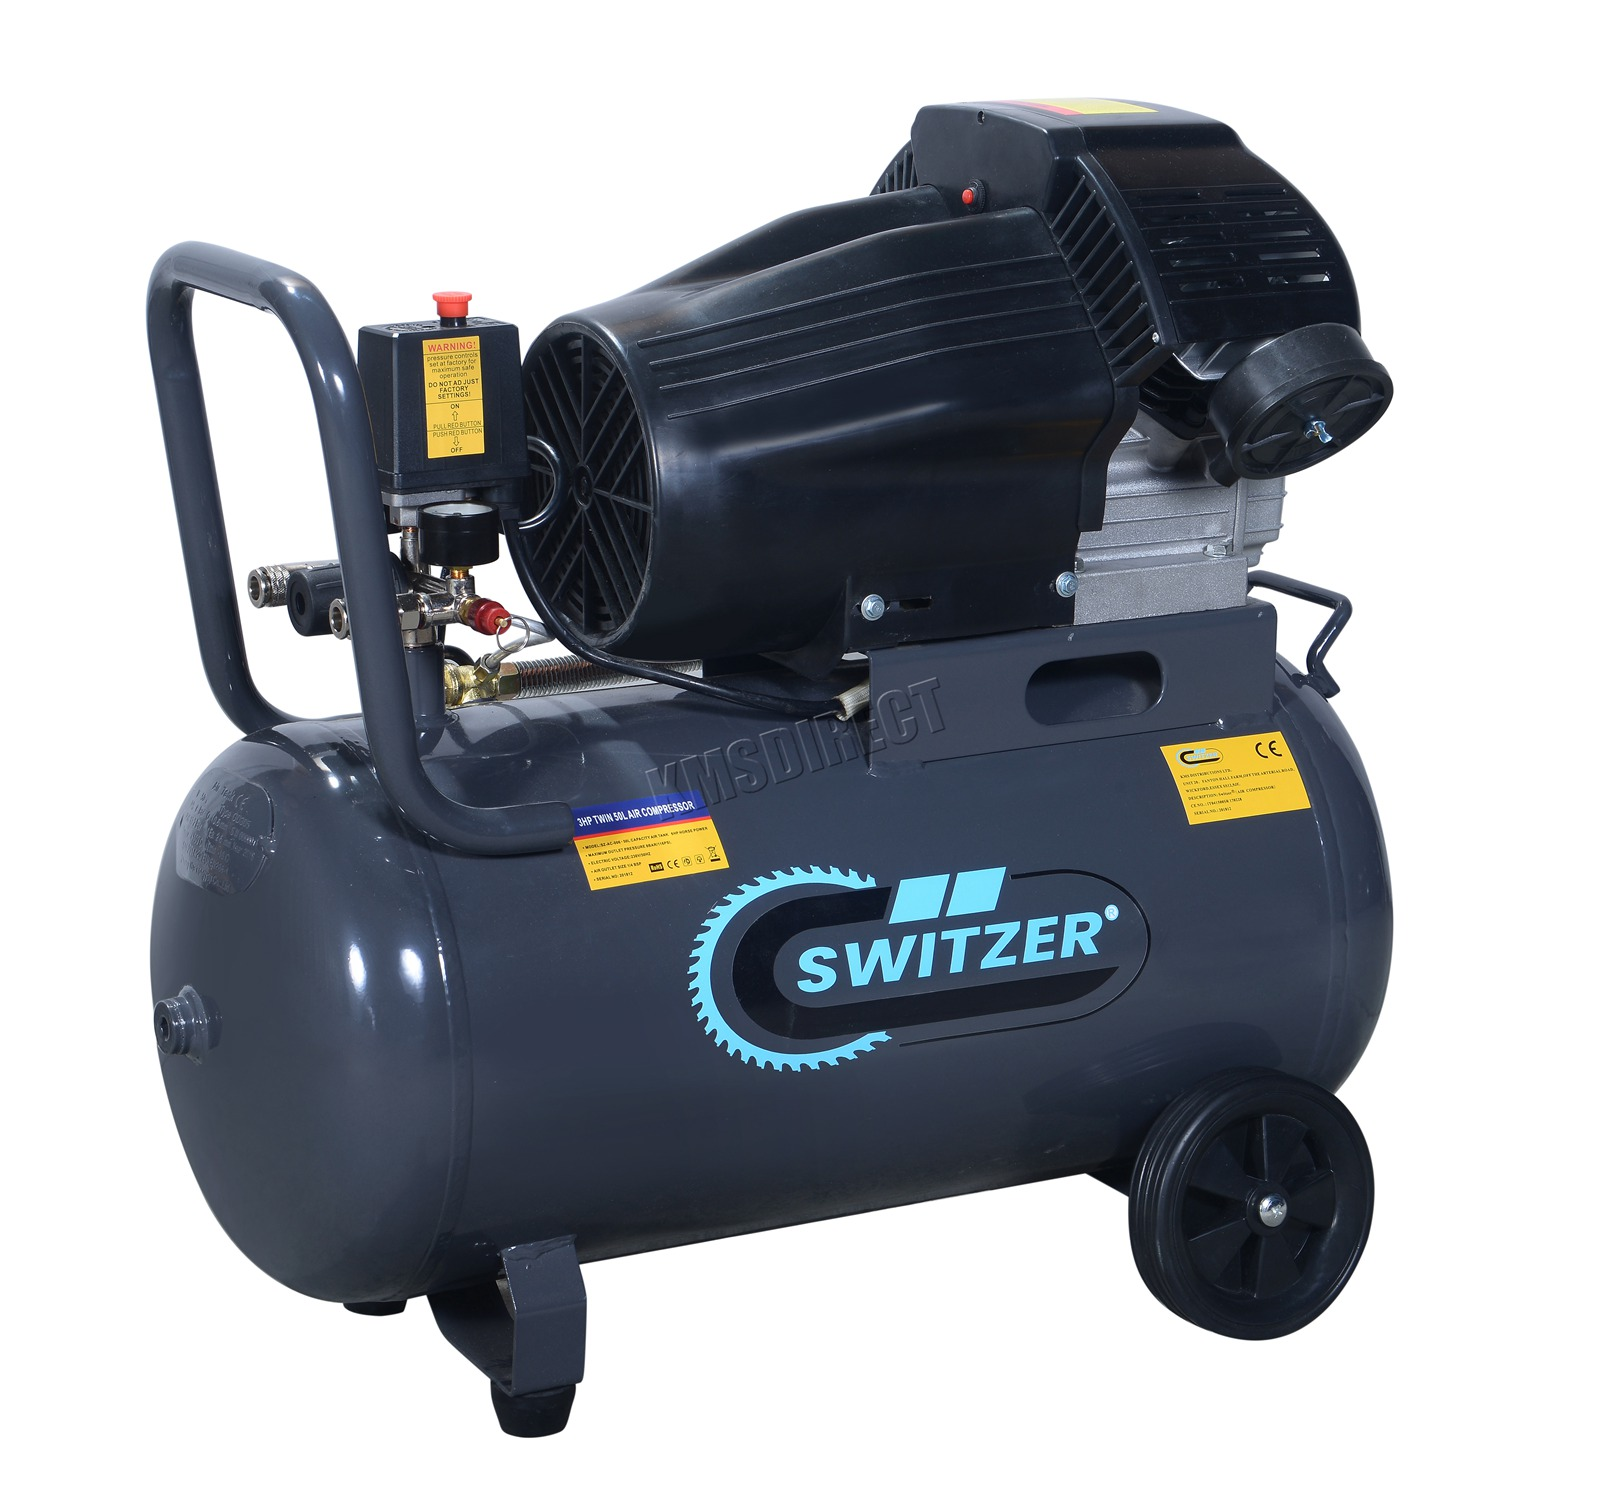 Mobile Air Compressor >> Details About Switzer Mobile Air Compressor 50 Litre 3hp 13cfm 230v Twin Cylinder Ac006